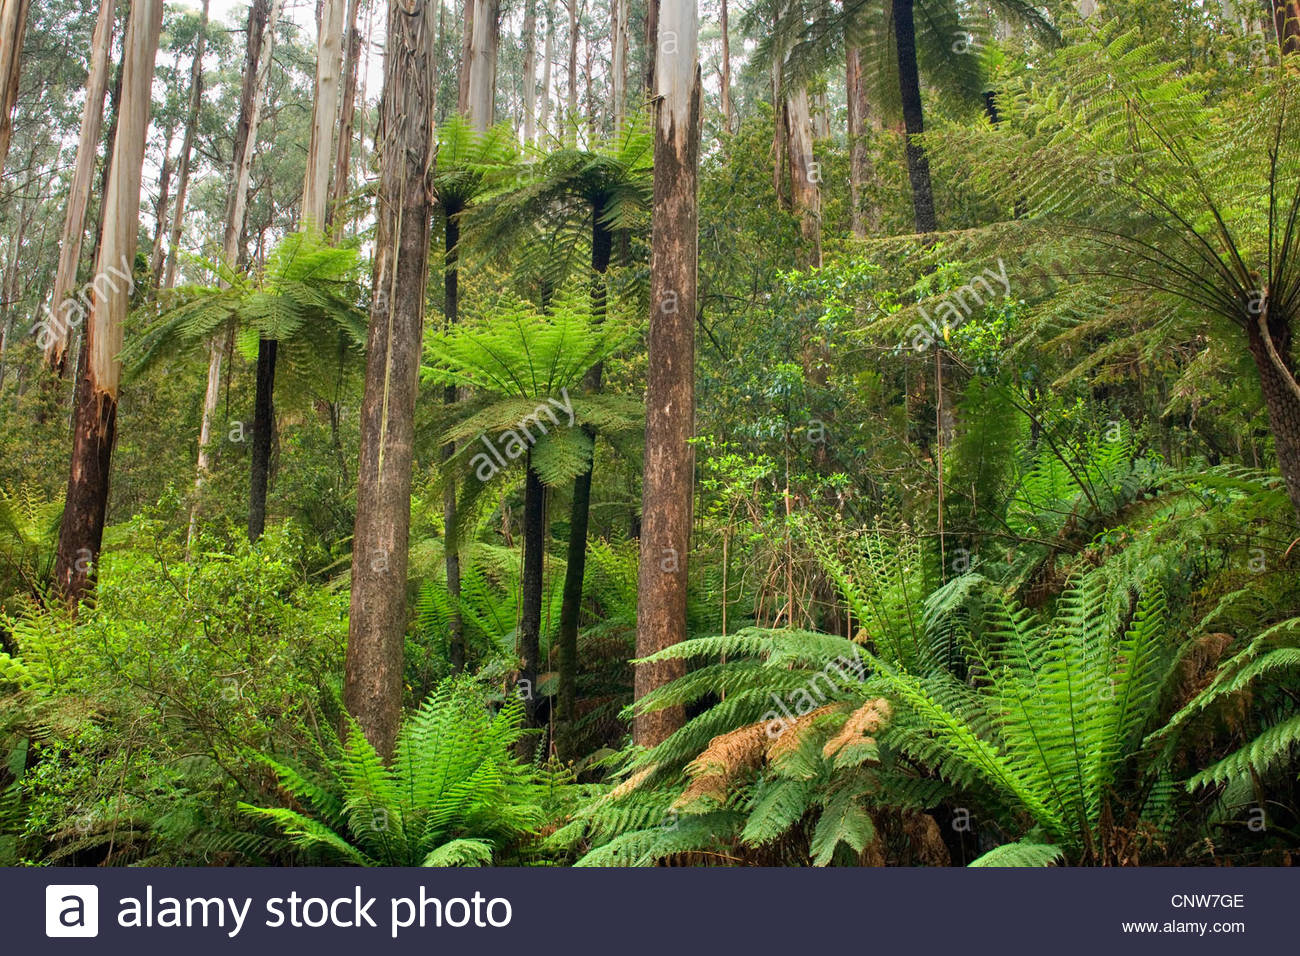 mountain ash, Victorian ash (Eucalyptus regnans), Wet Sclerophyll Forest, magnificent forest consisting of mainly - Stock Image